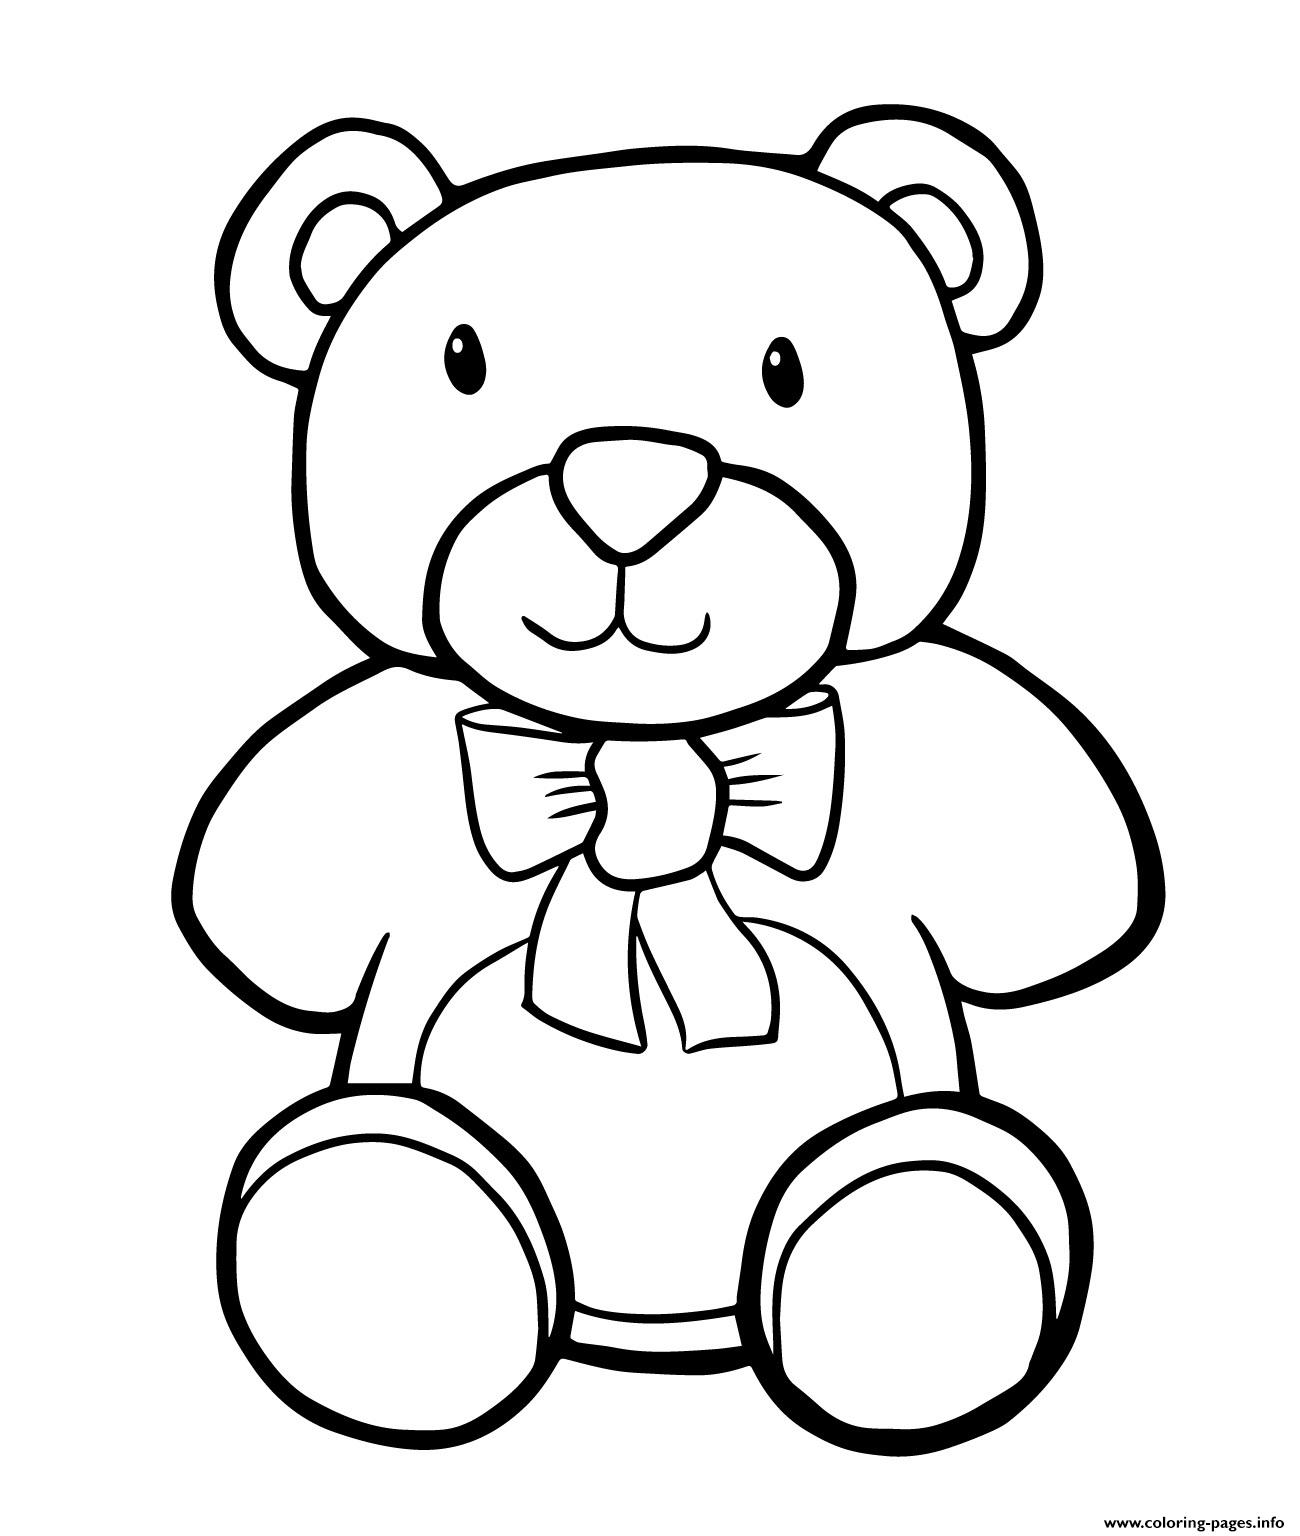 - Teddy Bear Simple Kids Coloring Pages Printable